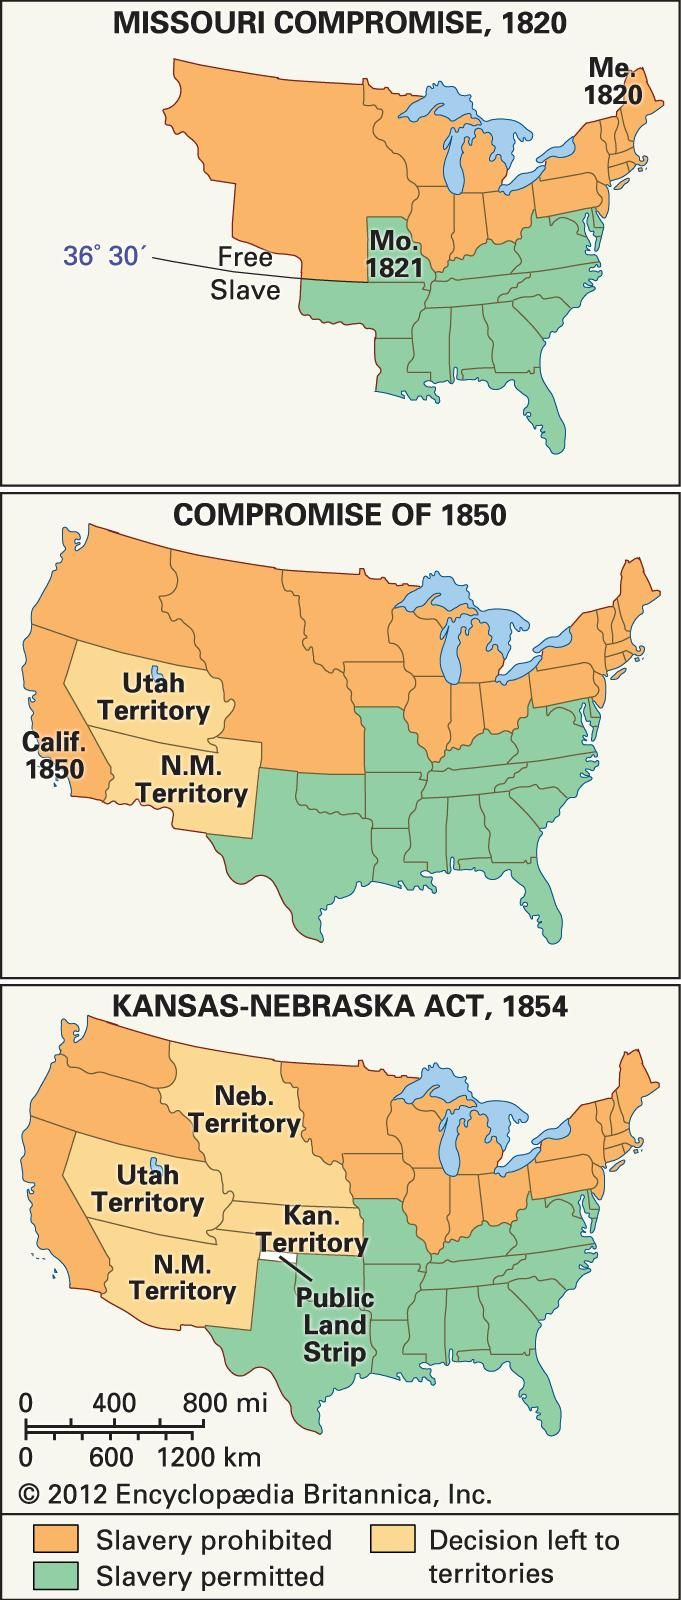 missouri compromise of 1820 compromise of 1850 and the kansas nebraska act as the compromises of the The compromise of 1850 and the kansas-nebraska act the missouri compromise was an act of congress passed in the 1820 missouri compromise played a large.